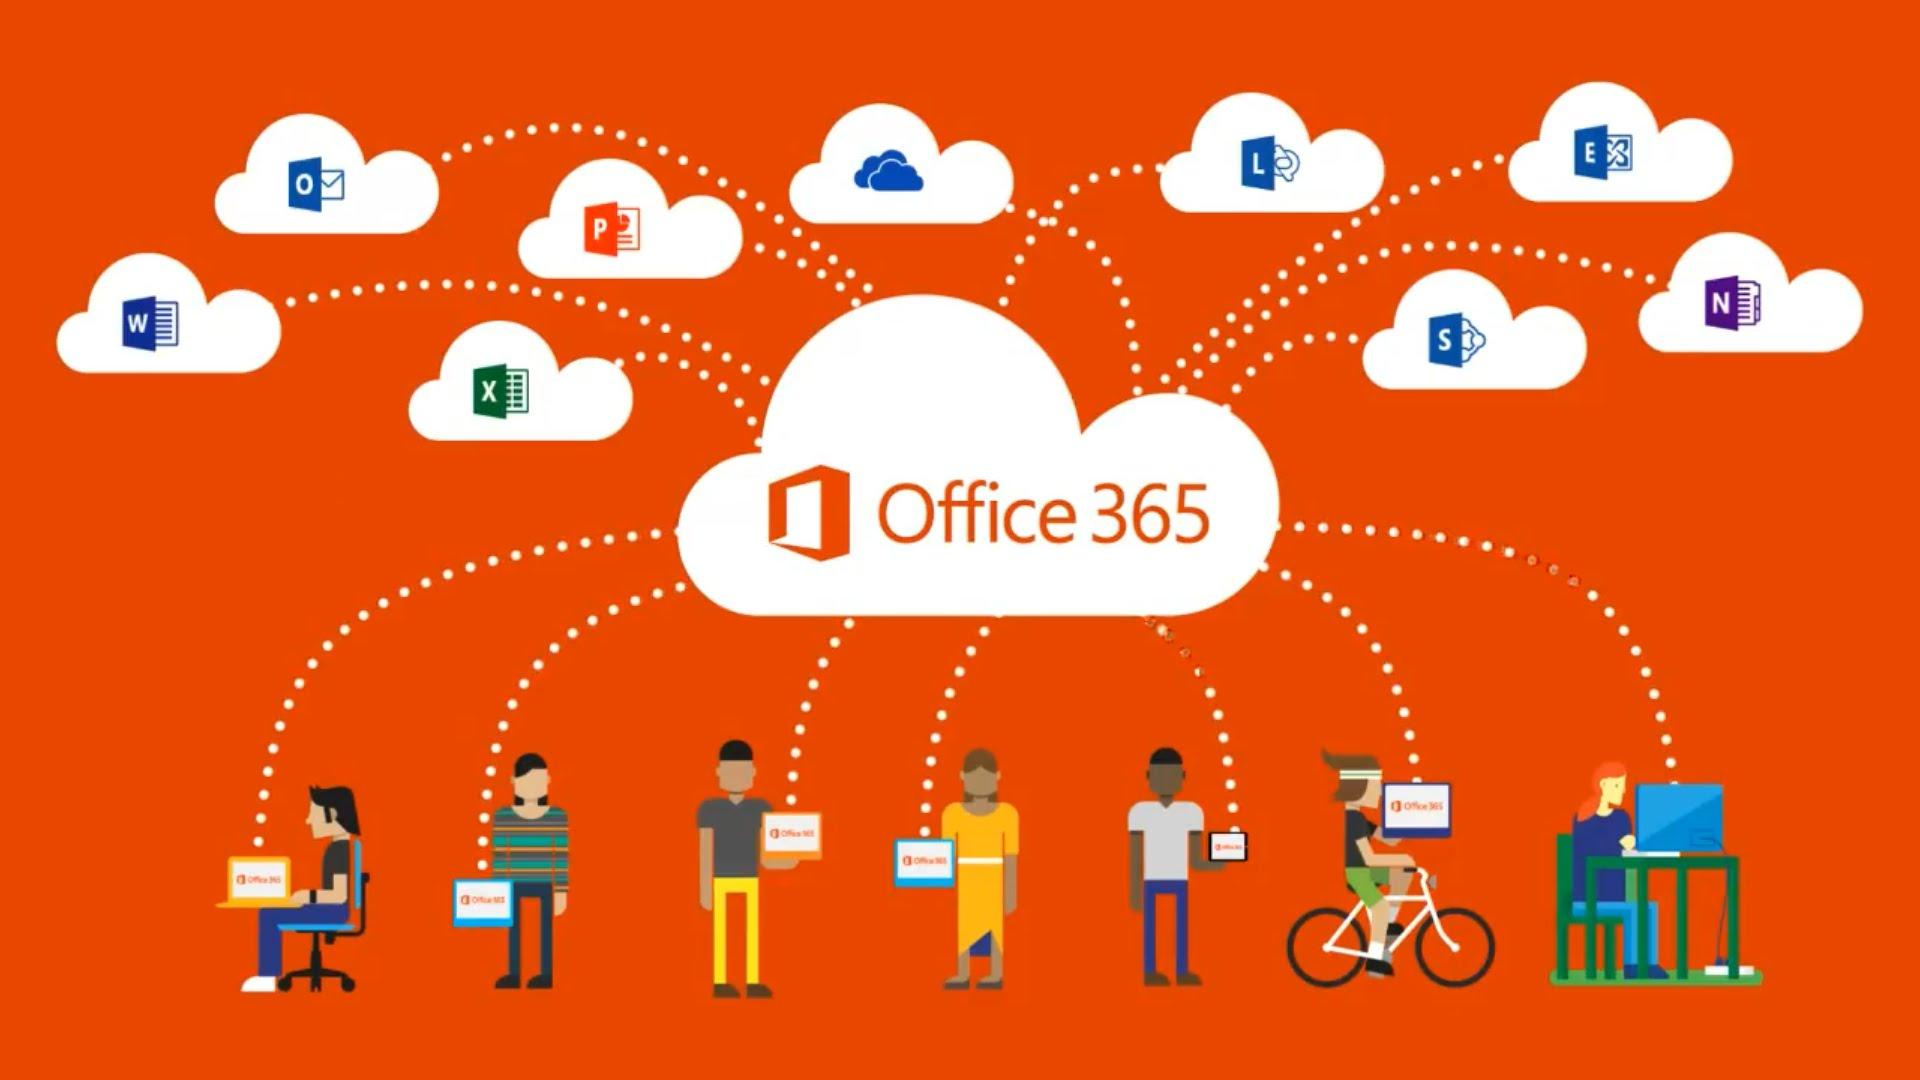 Review Microsoft Office 365: Microsoft's cloud-based collaborative suite - appvizer